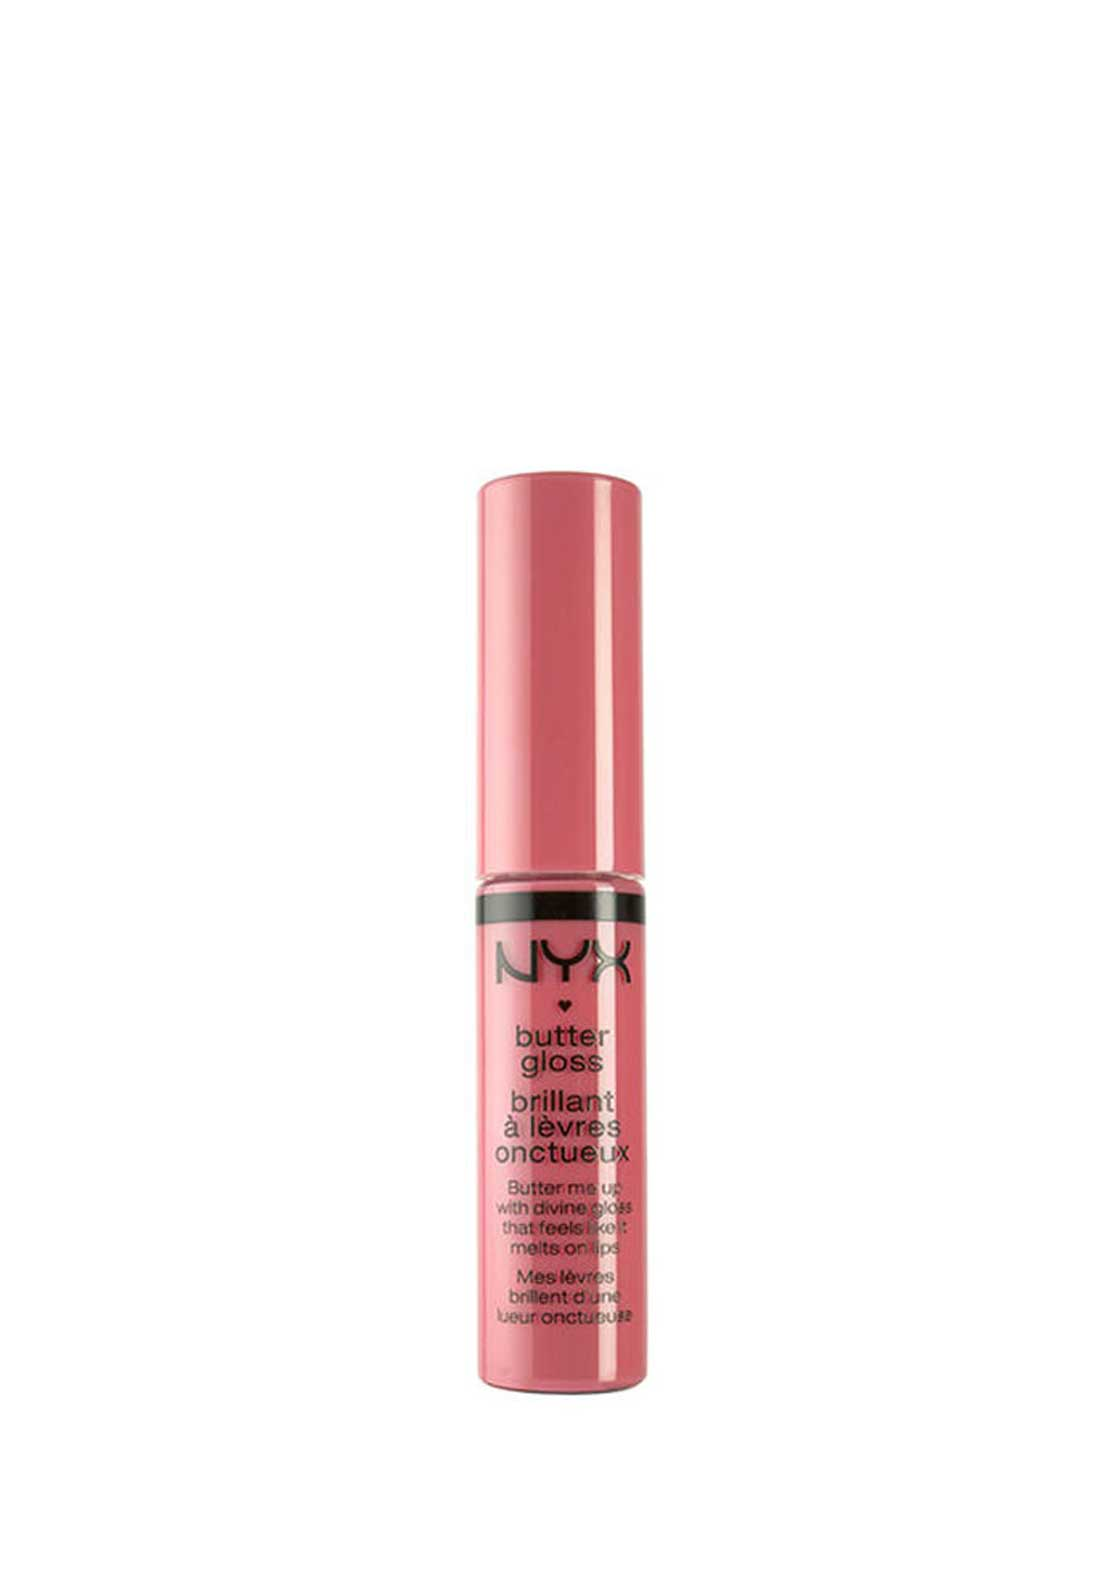 NYX Make Up Butter Gloss Lip Gloss, 11 Maple Blondie